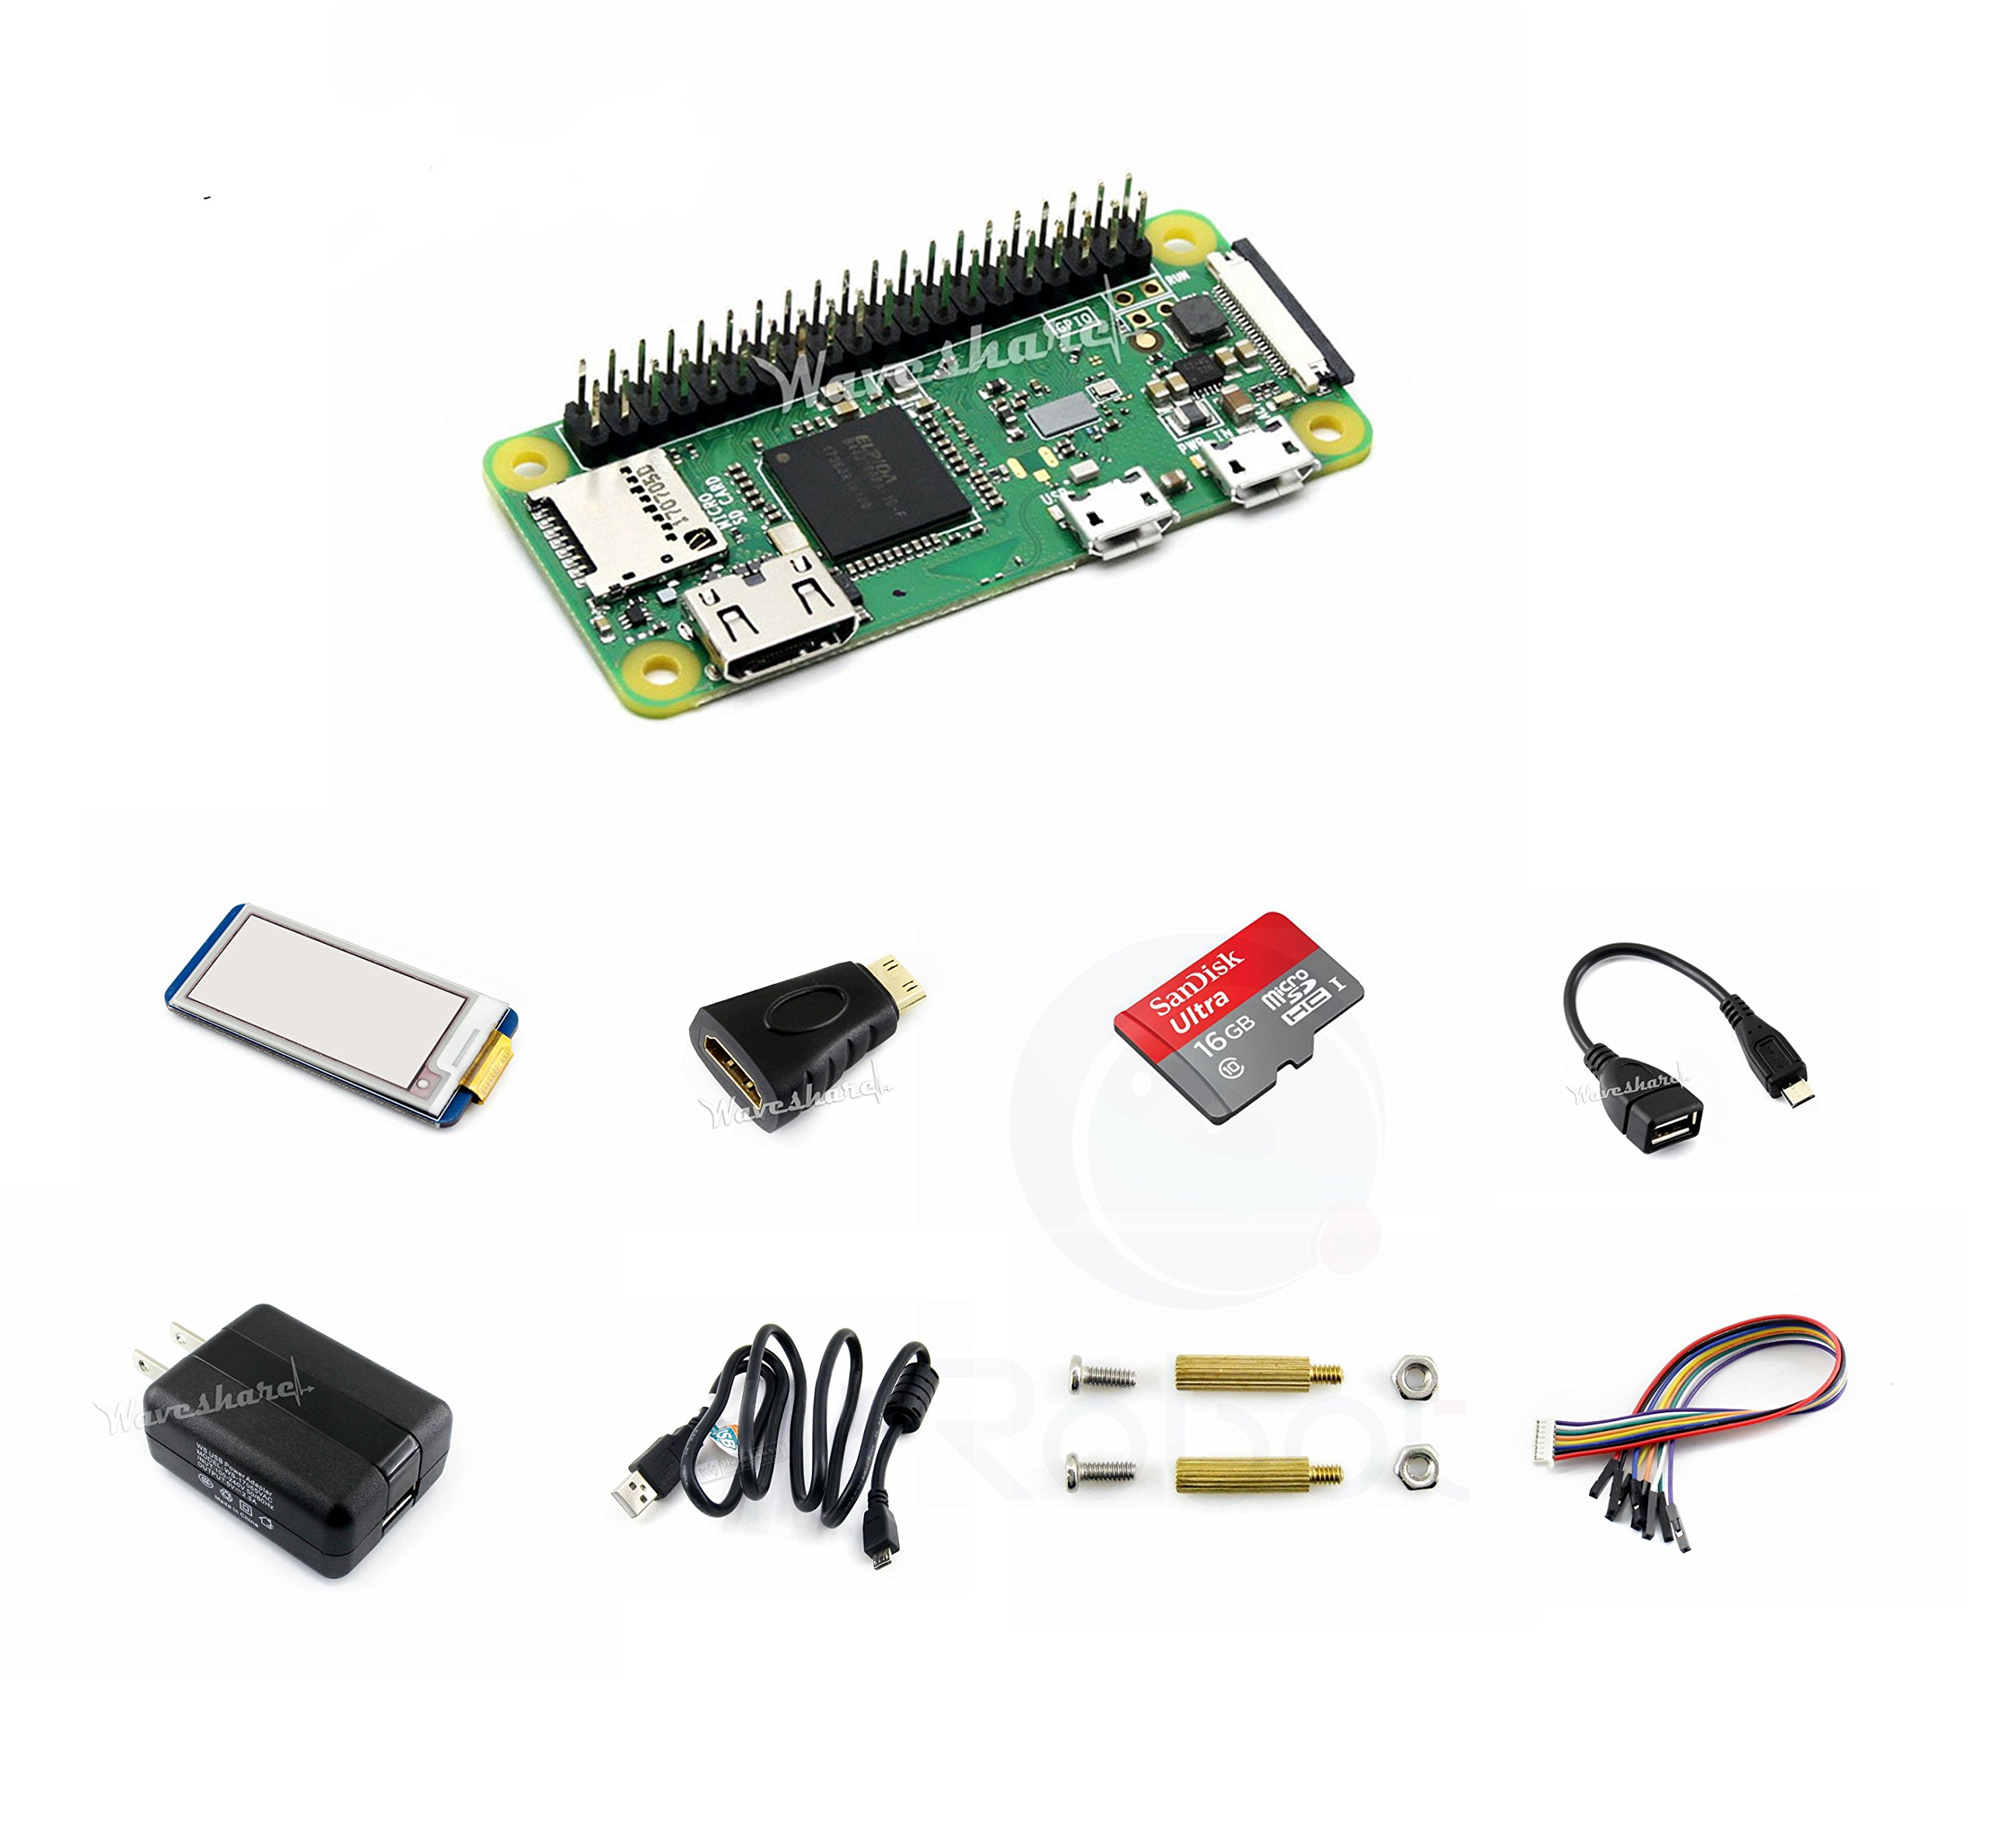 CQRobot Kit E with 2.13inch e-Paper HAT for Raspberry Pi Zero WH, Includes: Raspberry Pi Zero WH, Micro SD Card, Power Adapter, Mini HDMI to HDMI Adapter, Micro USB OTG Cable and Components.